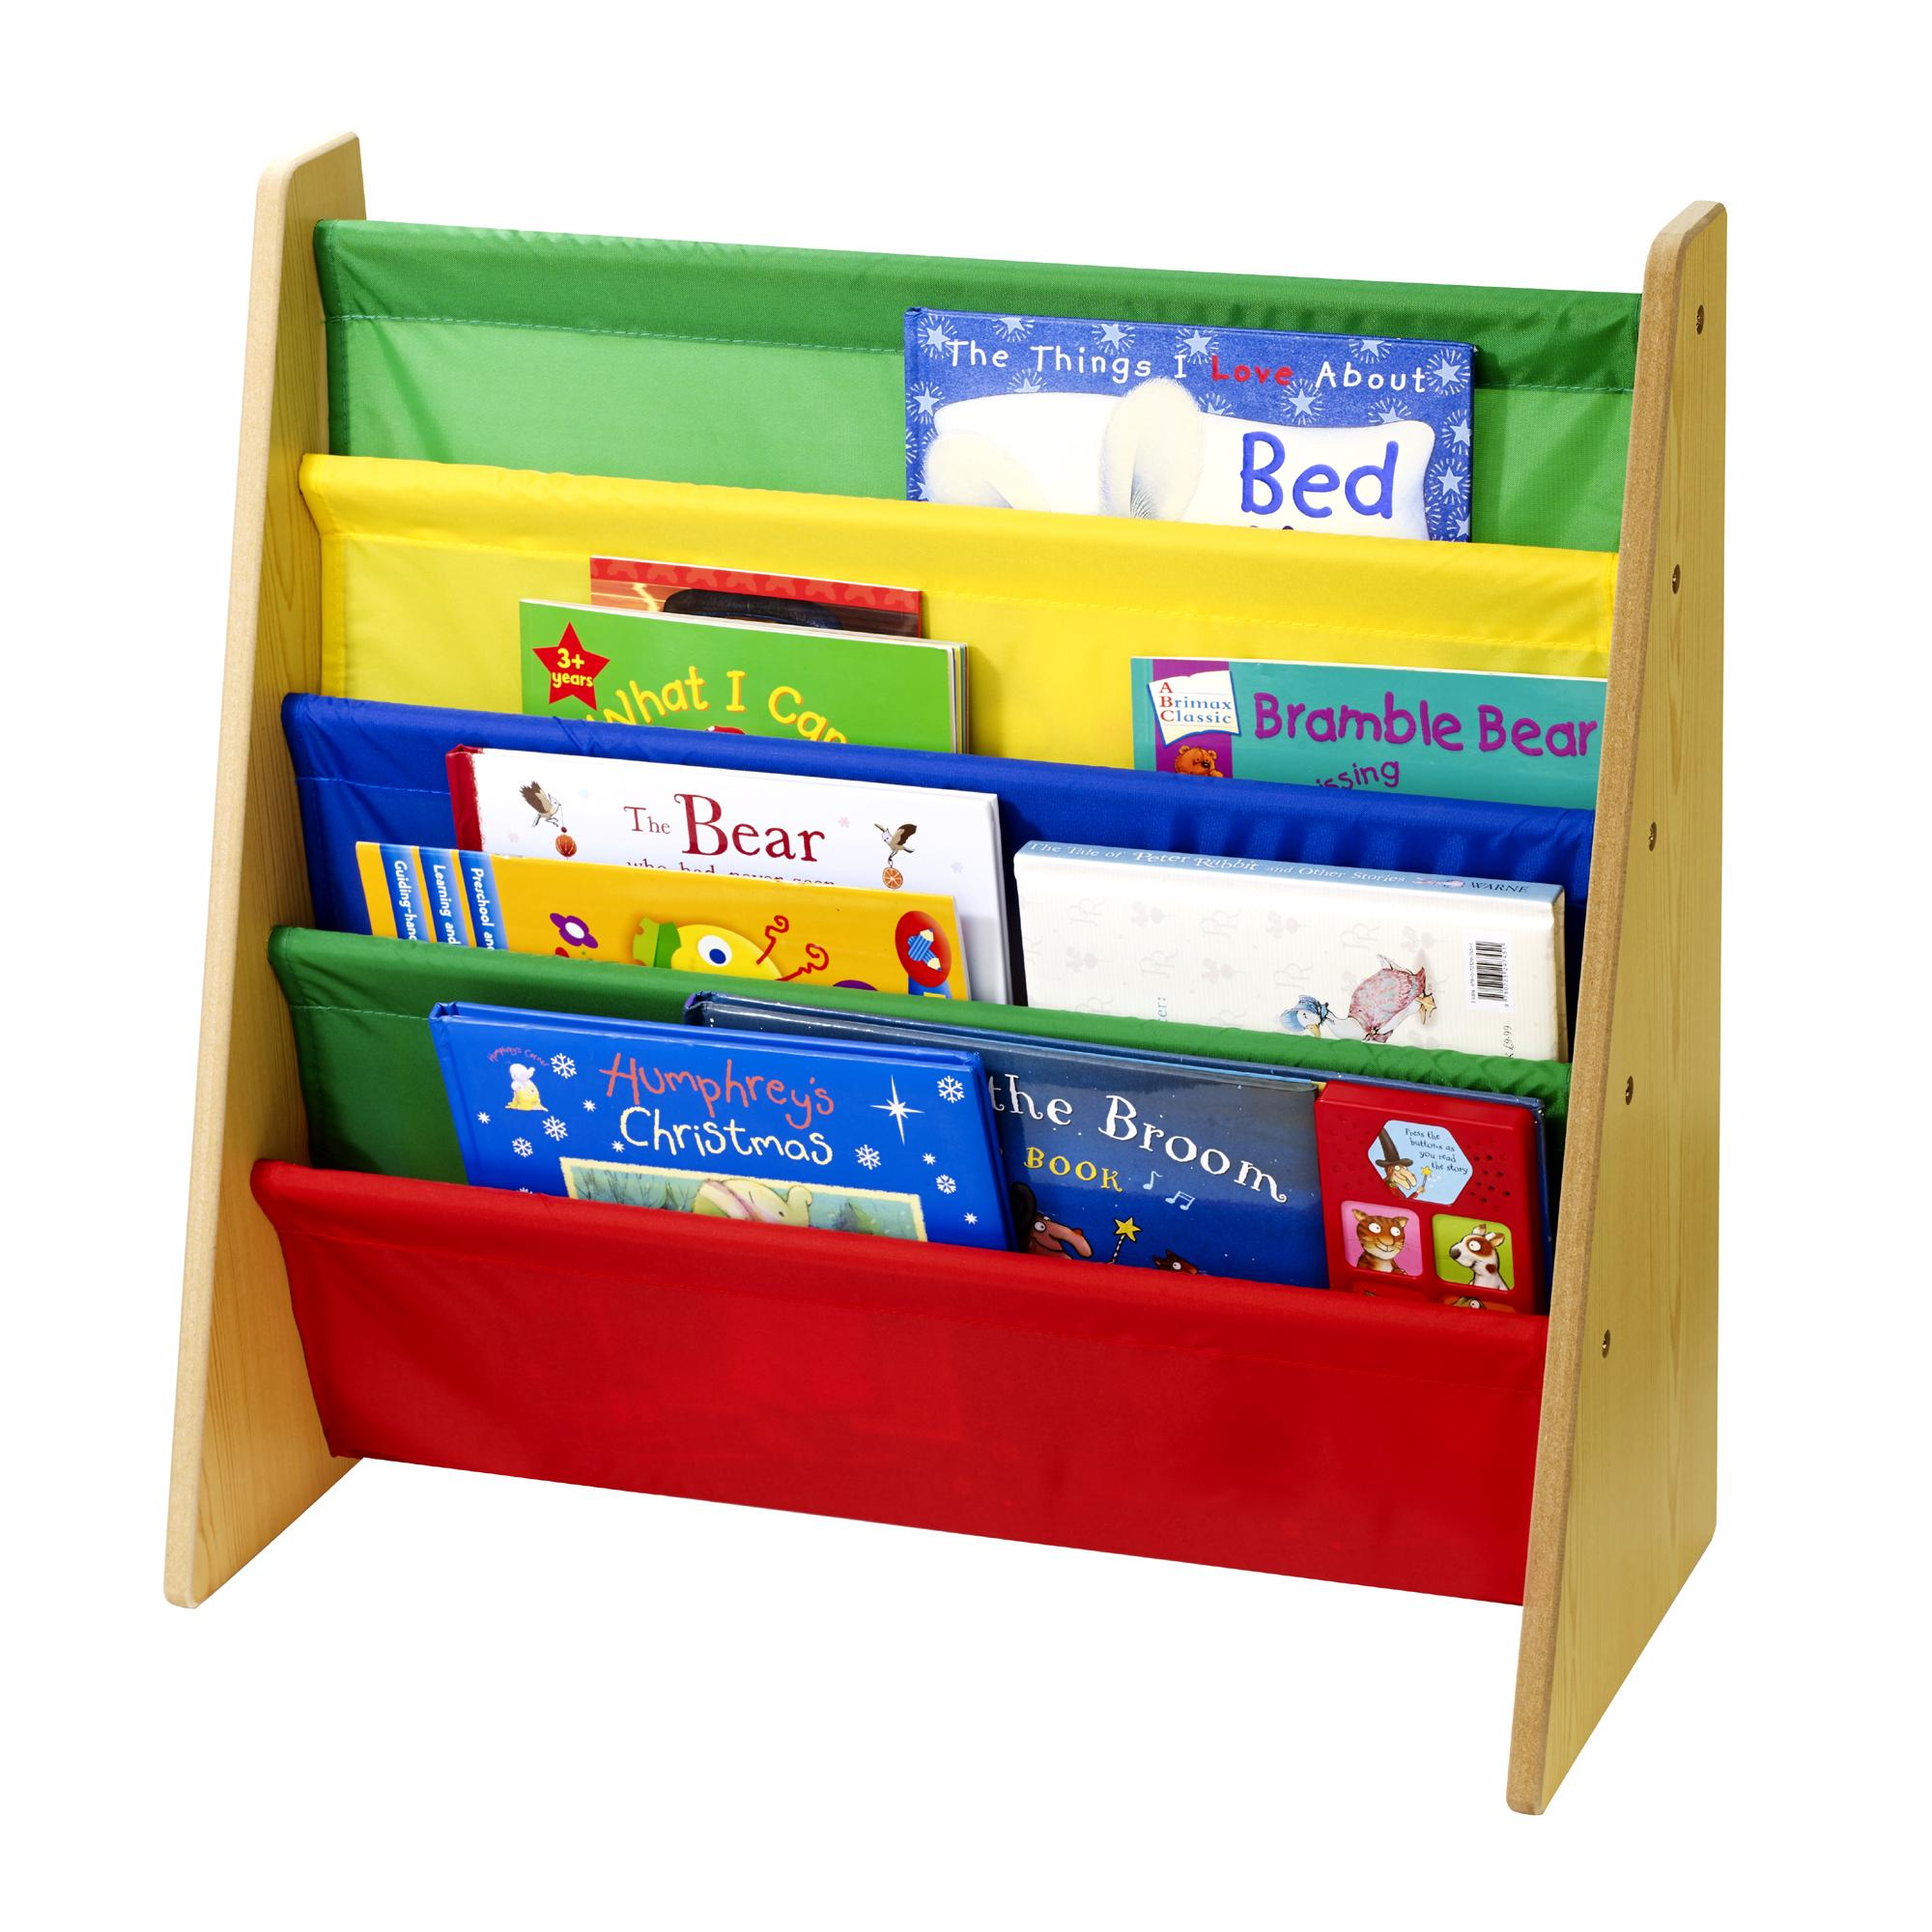 Details about Childrens/Kids Wooden Bookcase Rack Storage Book Shelf